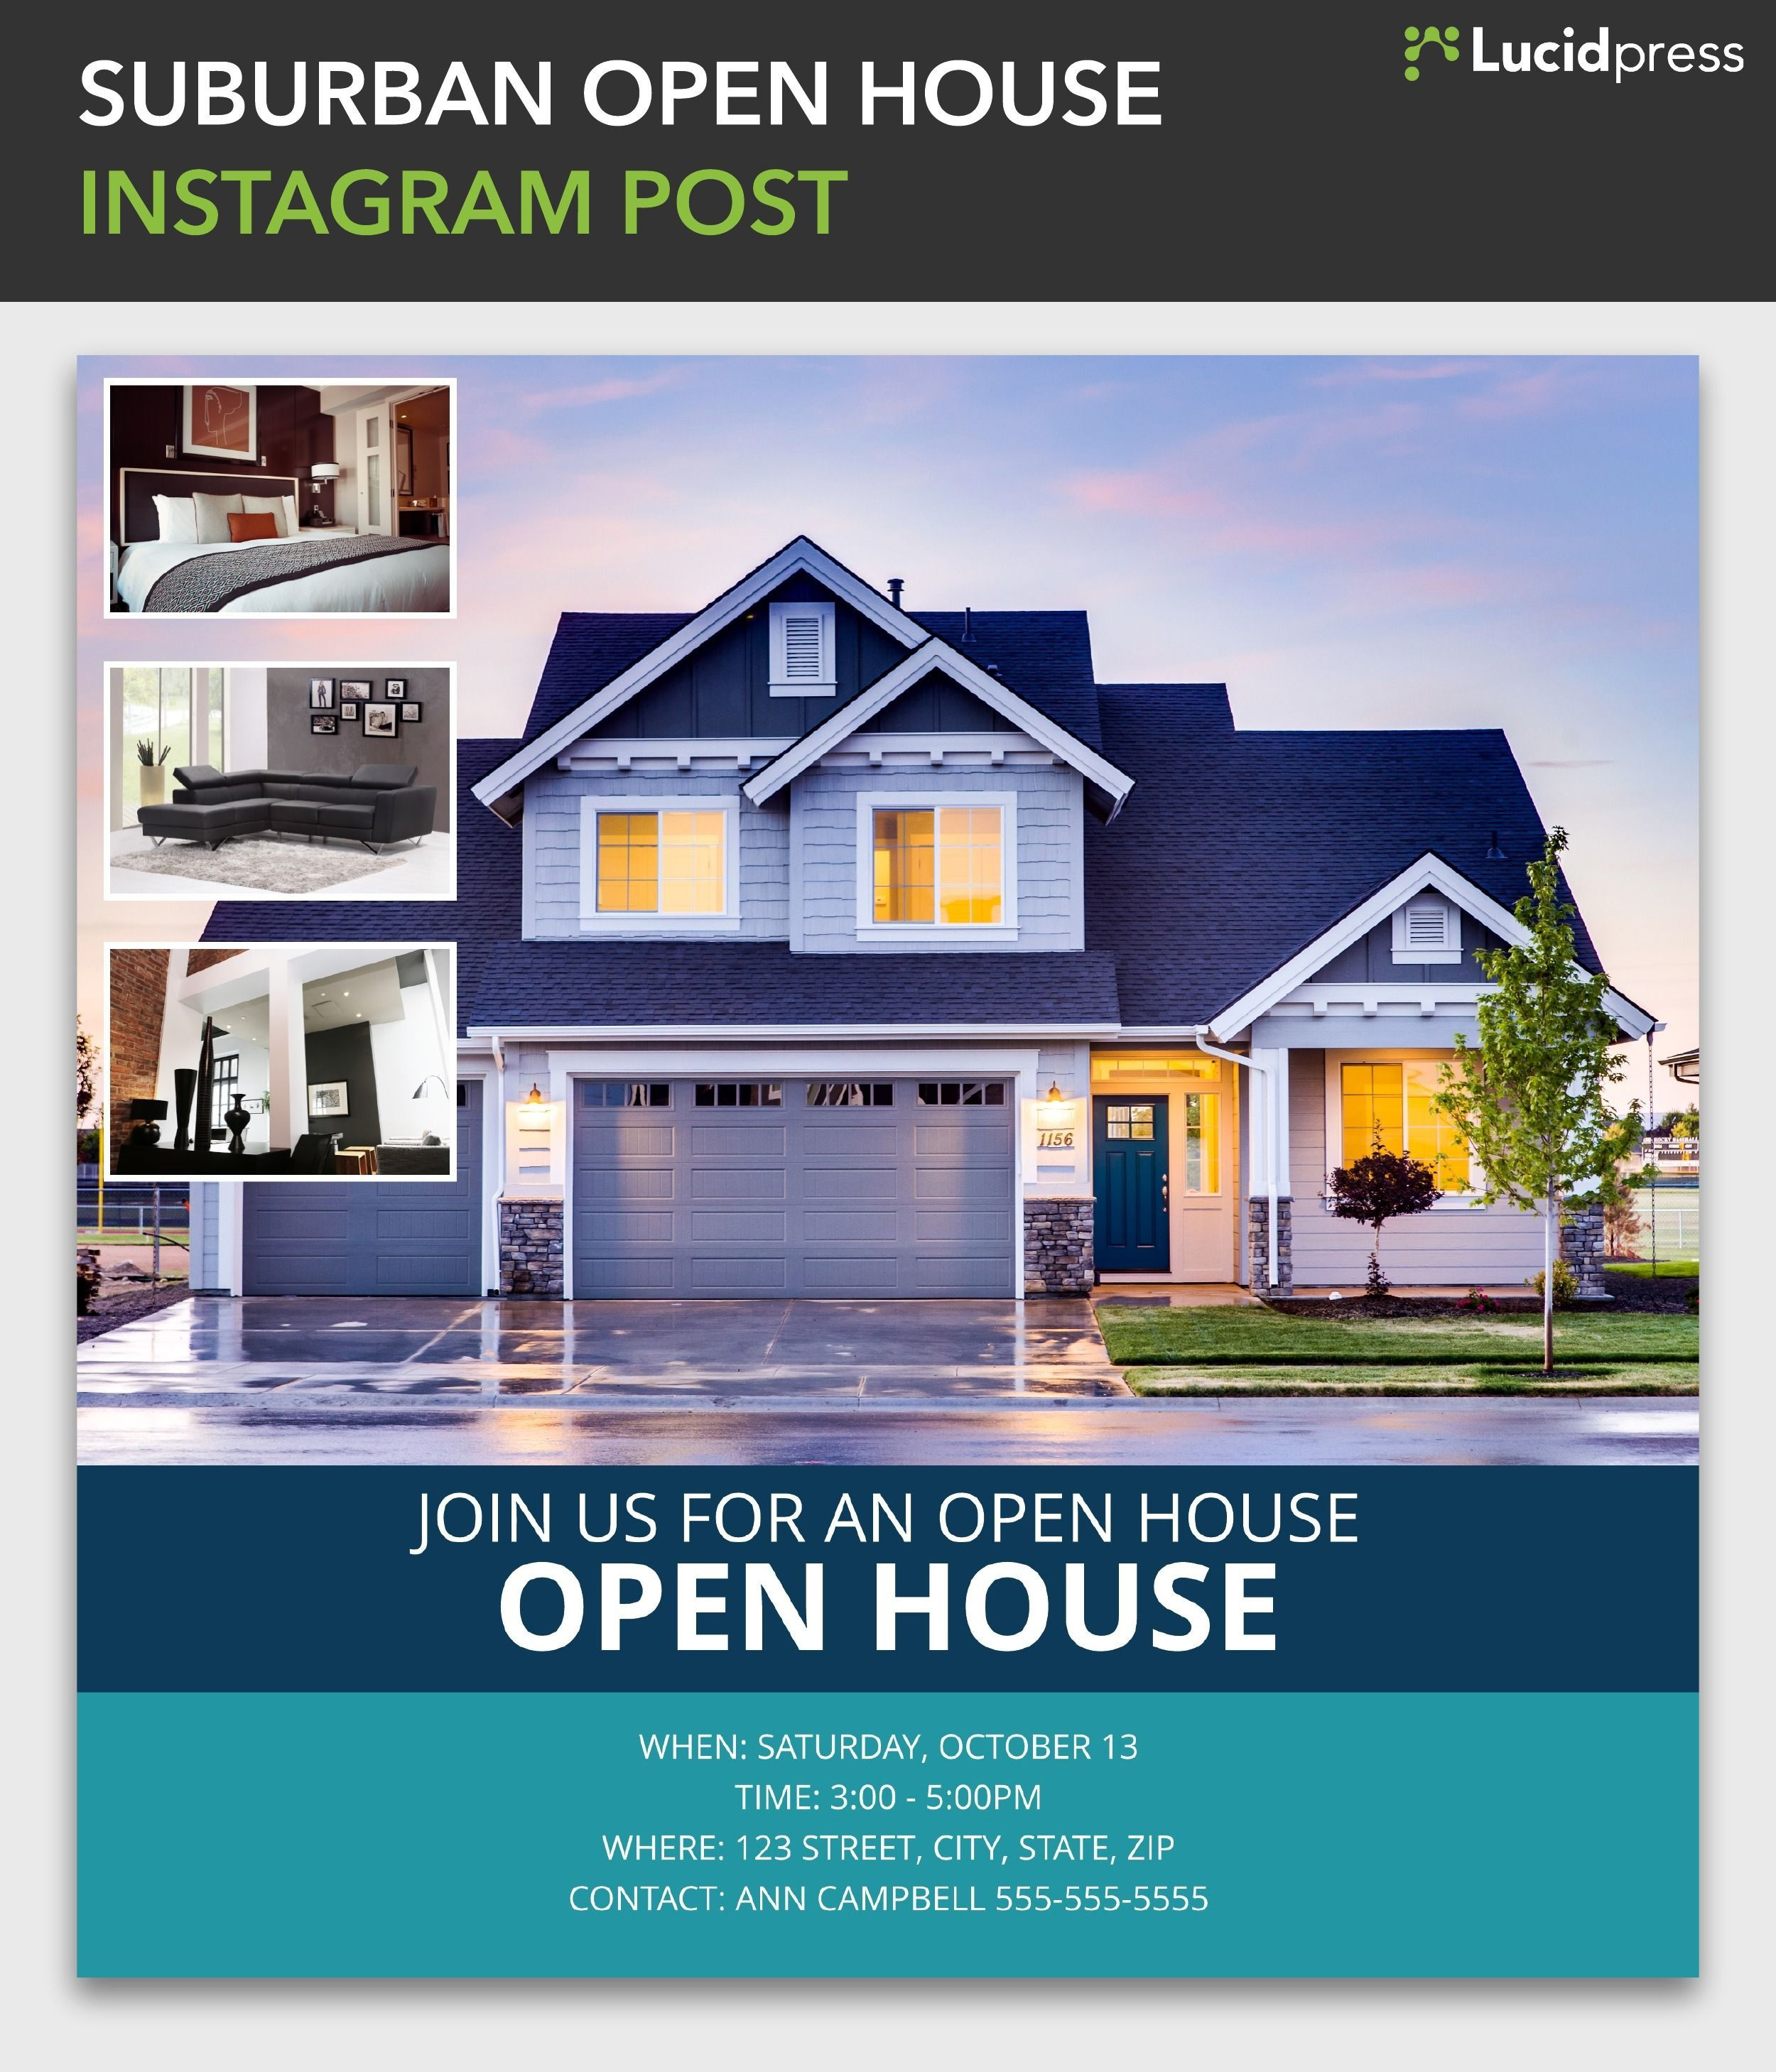 000 Dreaded Open House Flyer Template Word High Resolution  Free Microsoft SchoolFull